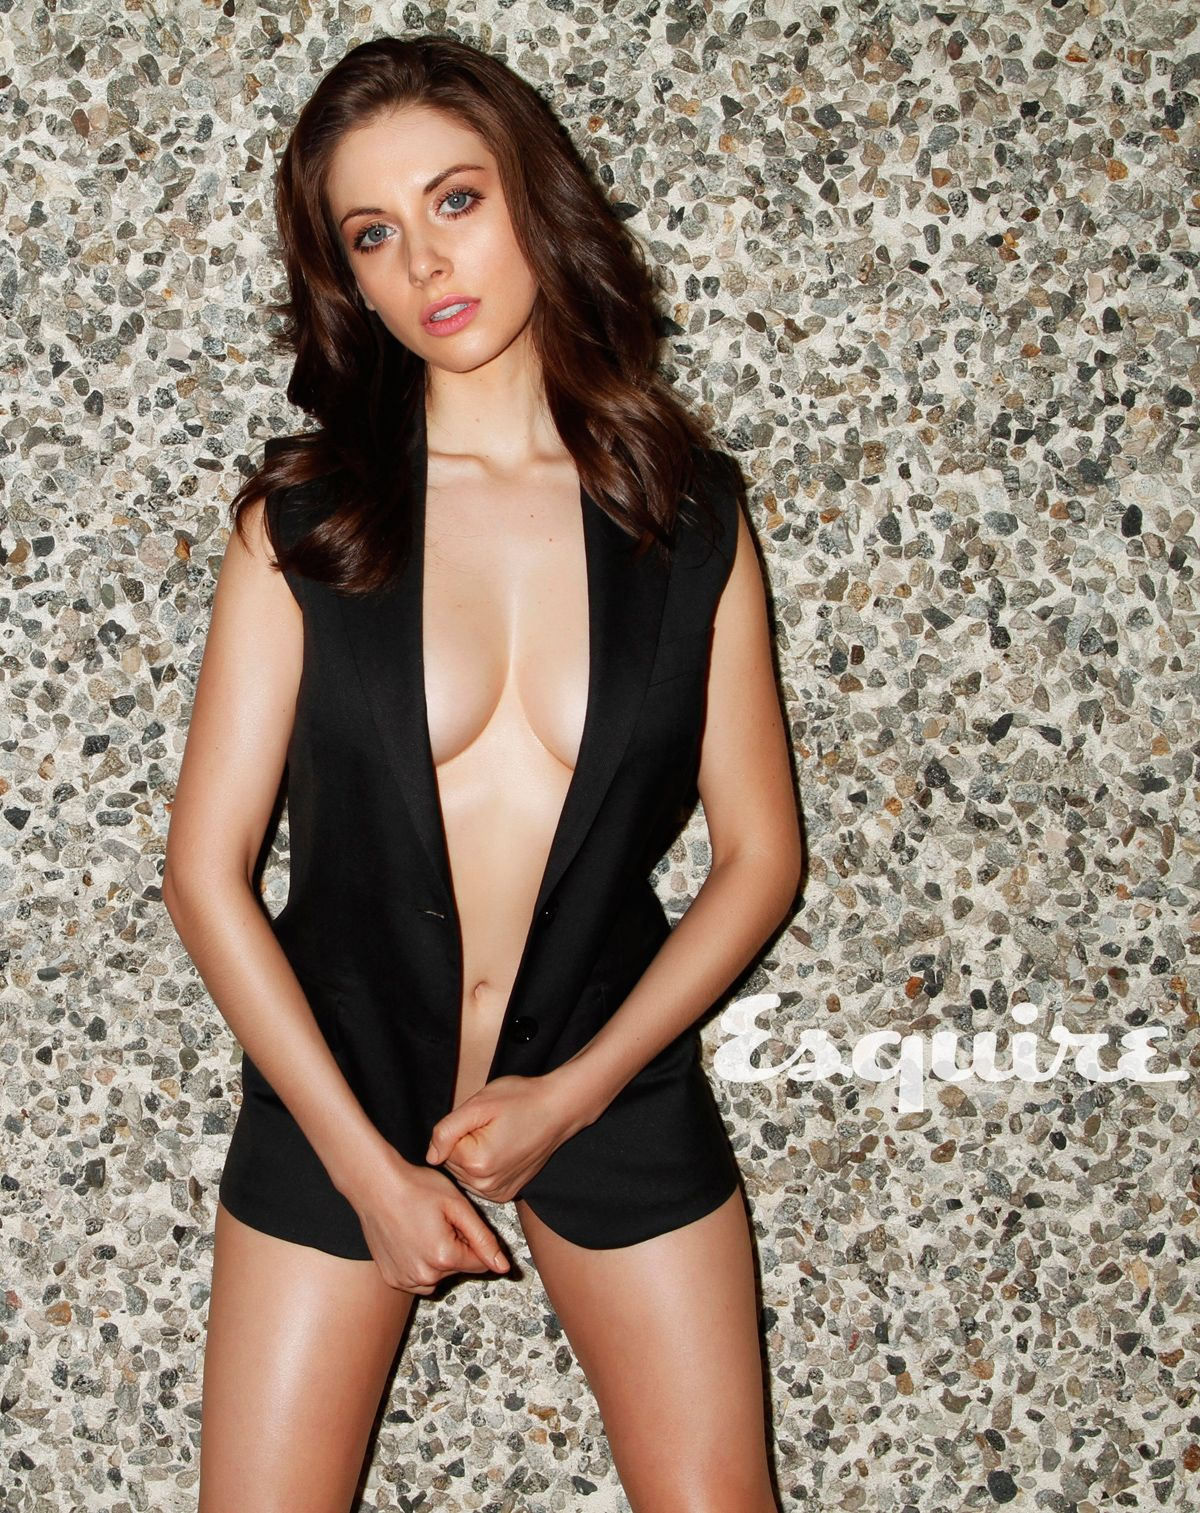 Pictures Alison Brie nudes (27 photo), Sexy, Fappening, Selfie, lingerie 2019